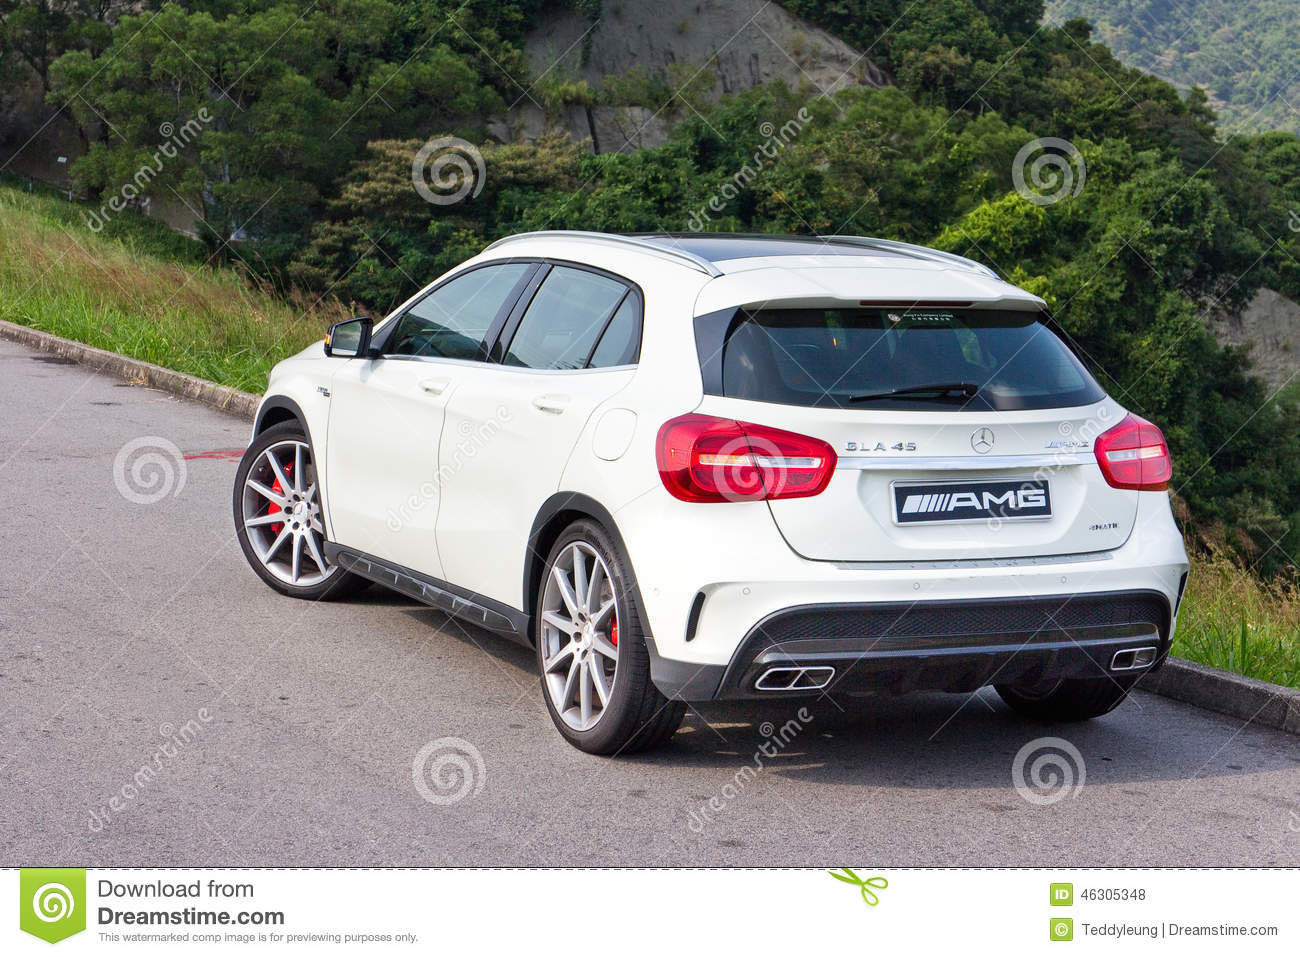 mercedes benz gla 45 2014 test drive editorial stock photo. Black Bedroom Furniture Sets. Home Design Ideas